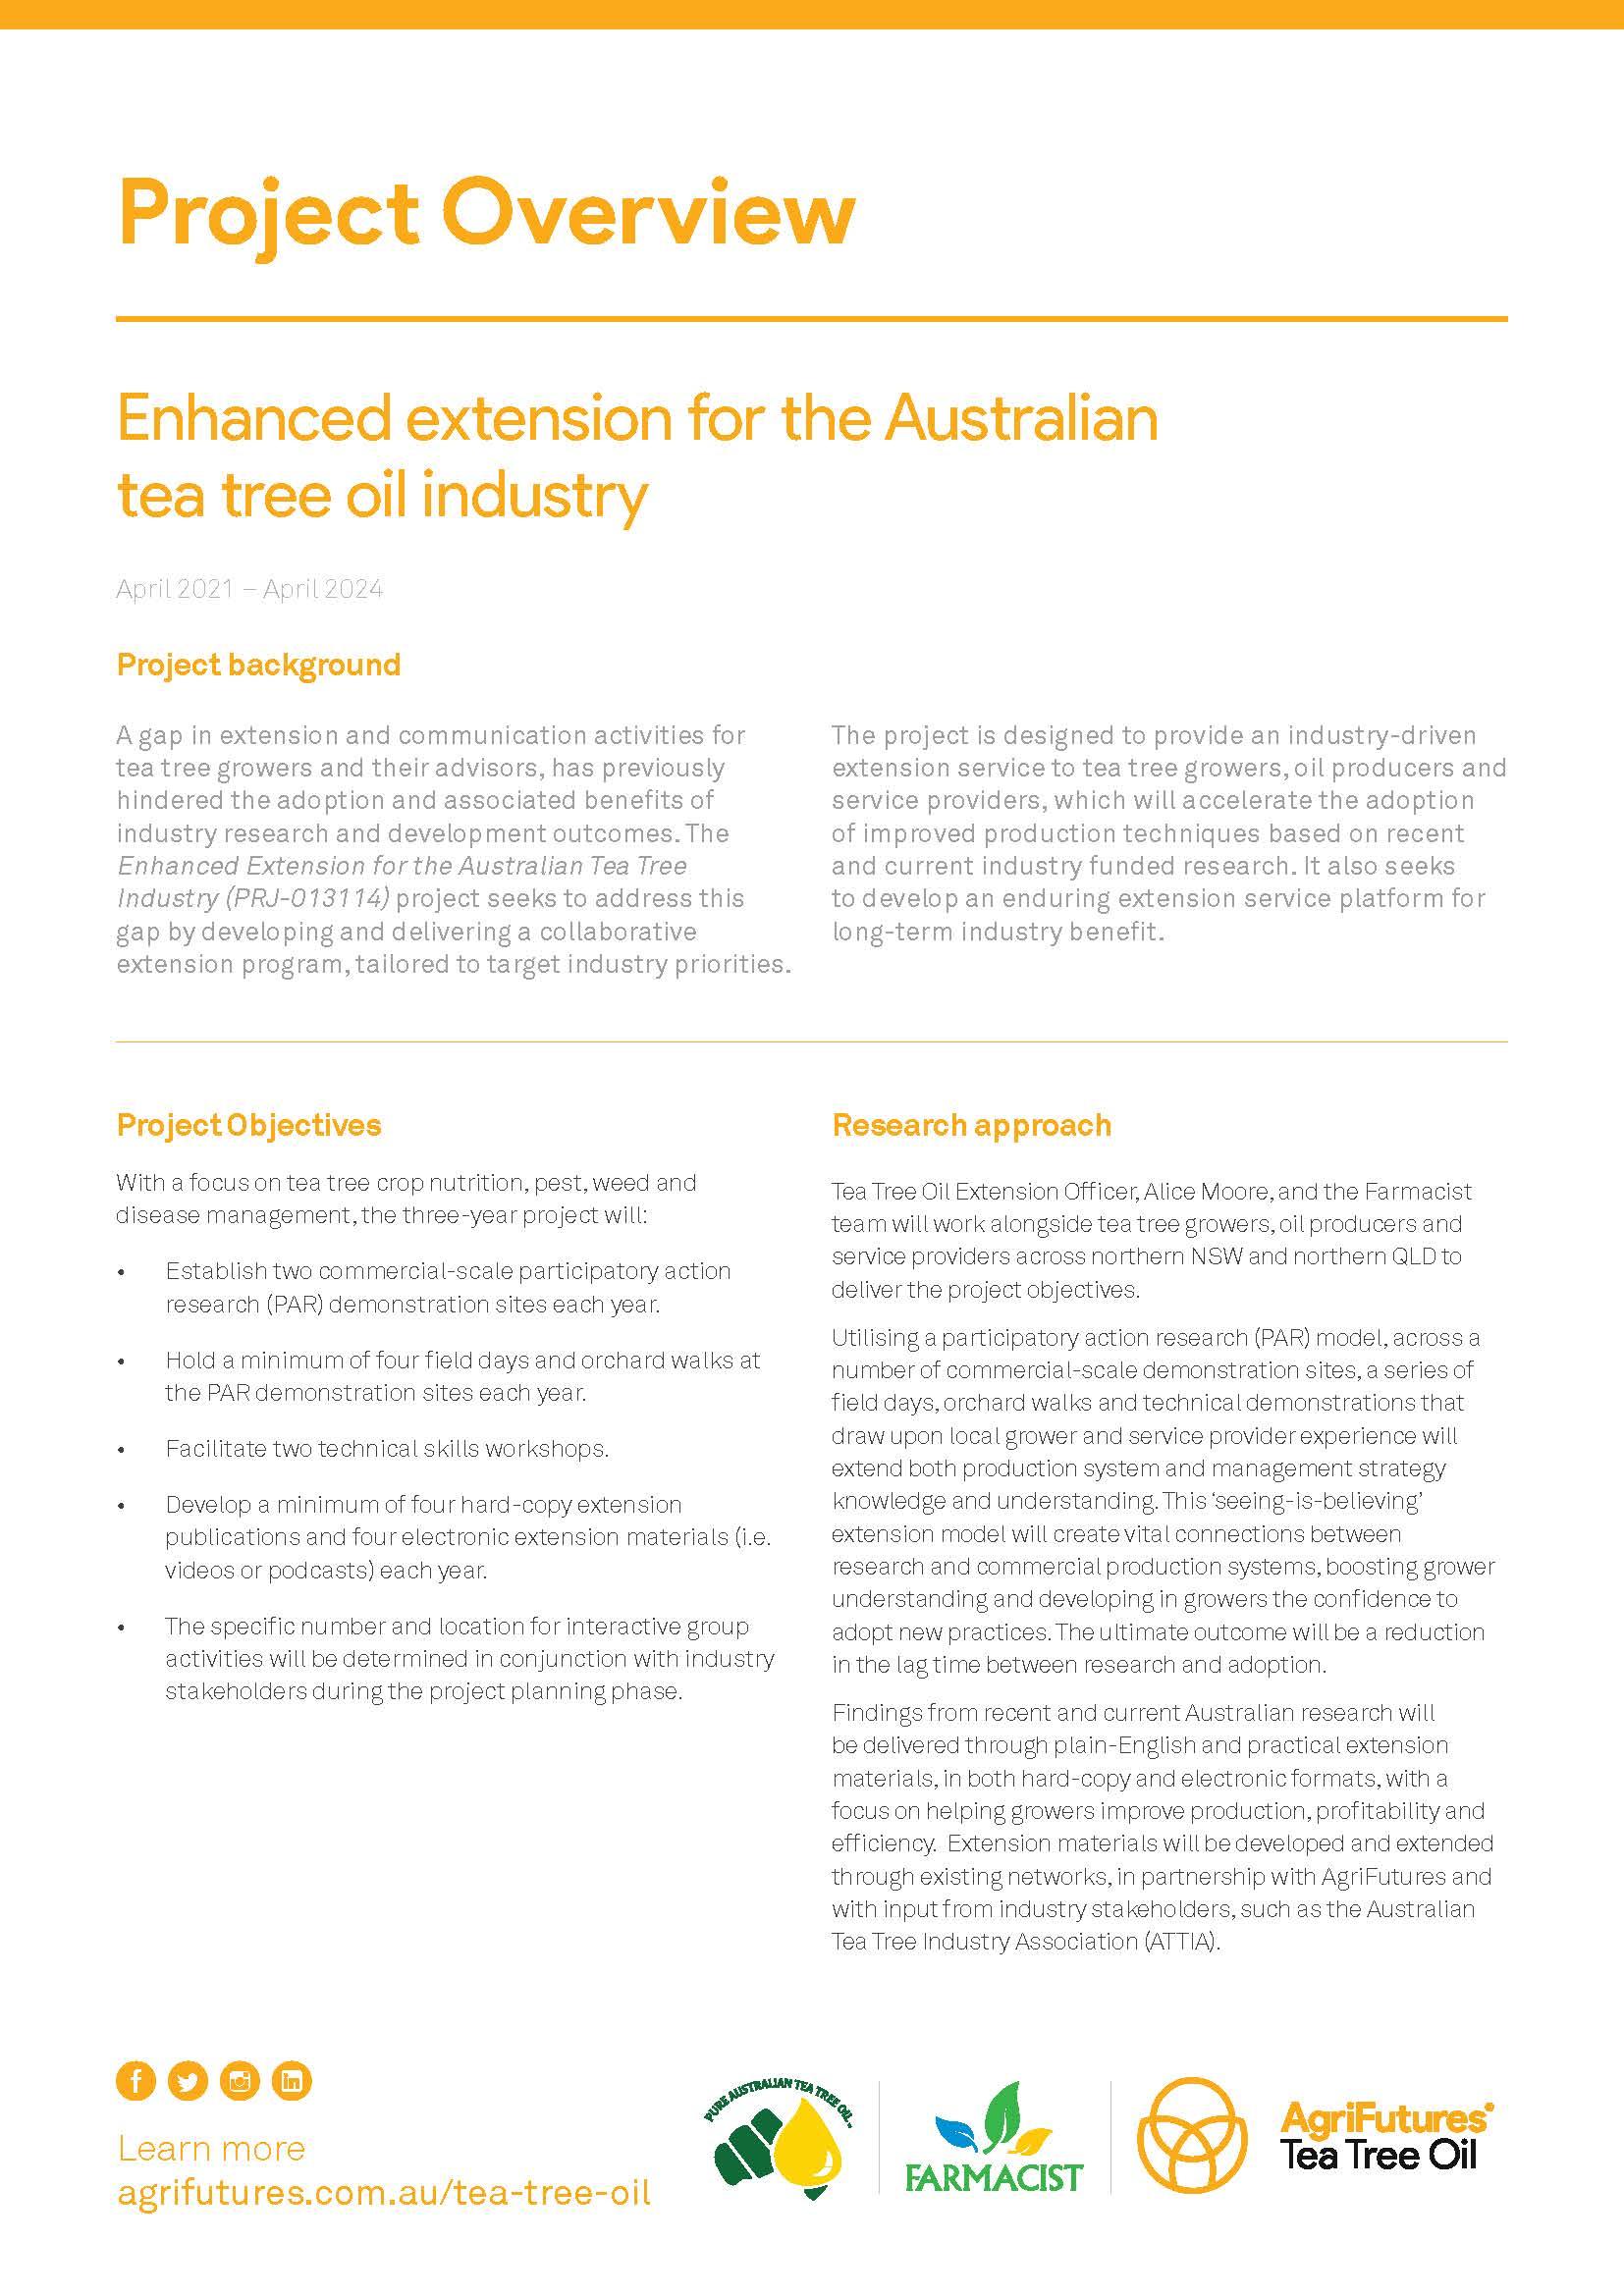 Project overview: Enhanced extension for the Australian tea tree oil industry - image